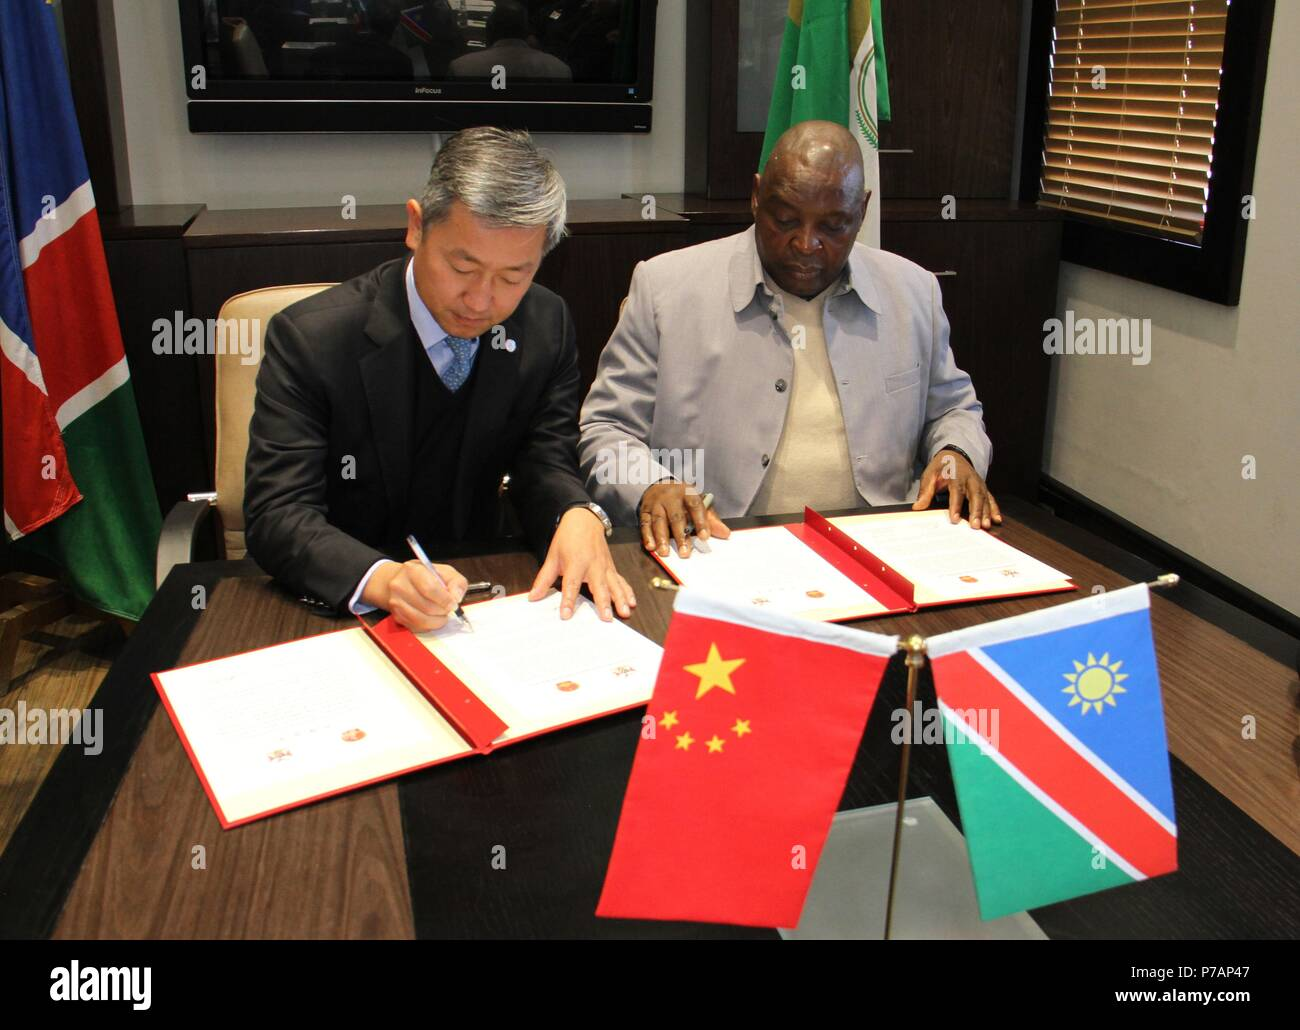 Windhoek, Namibia. 5th July, 2018. Chinese Ambassador to Namibia Zhang Yiming (L) and Namibia's Deputy Minister of Works and Transport James Sankwasa sign documents at a handover ceremony of meteorological equipment in Windhoek, capital of Namibia, on July 5, 2018. Meteorological equipment worth 2.4 million U.S. dollars donated by China were handed over to Namibia on Thursday. Credit: Wu Changwei/Xinhua/Alamy Live News - Stock Image